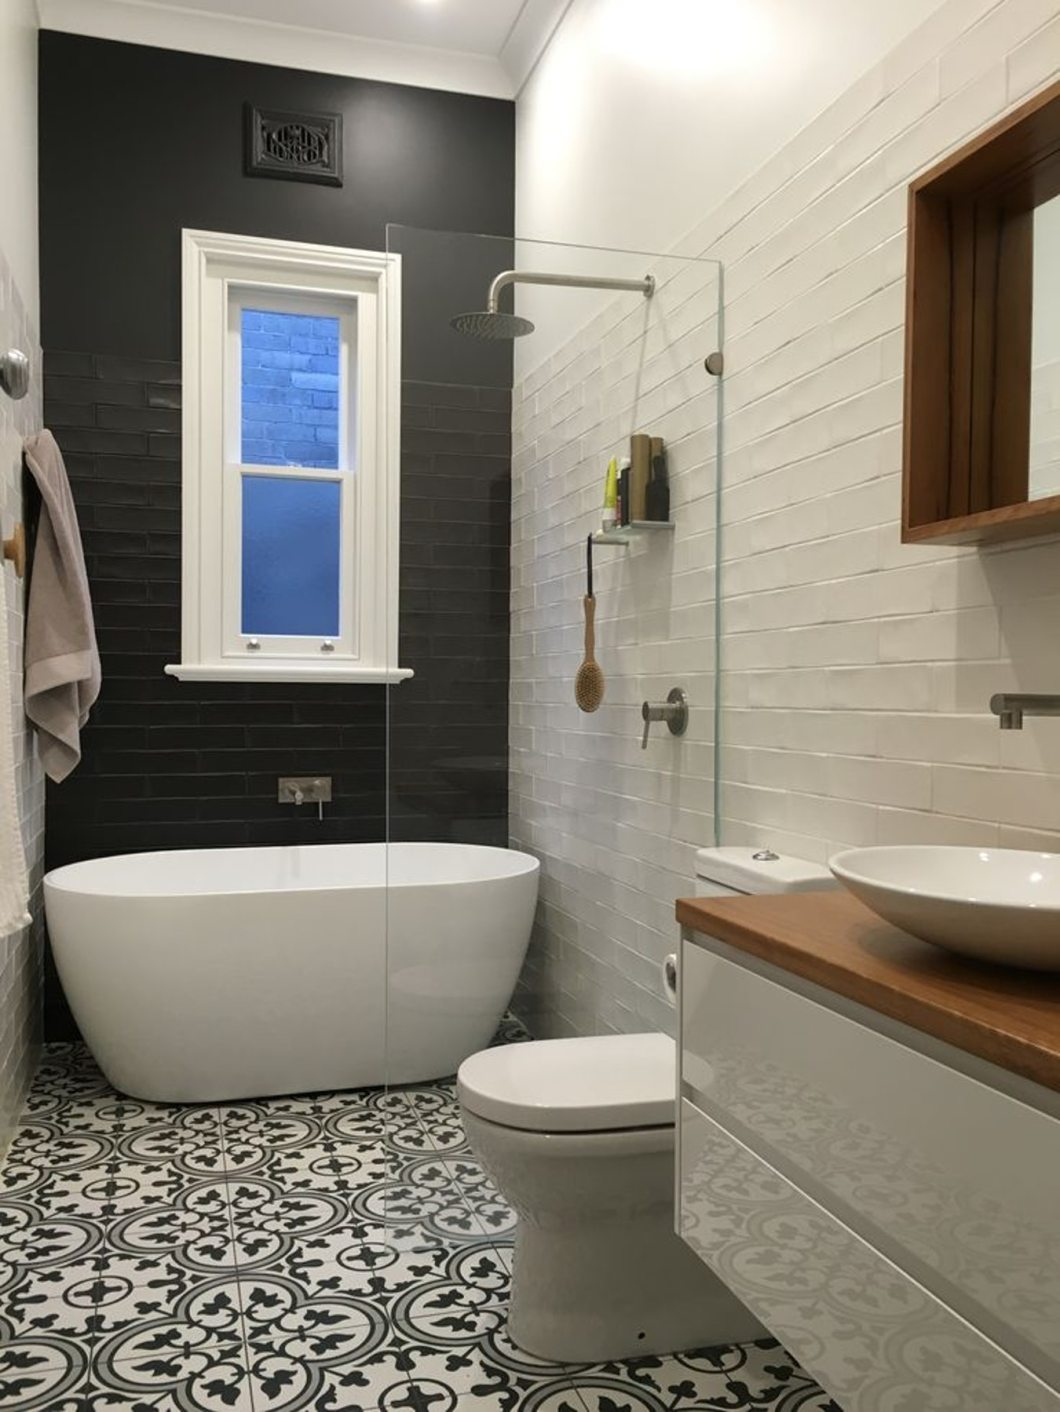 bathroom-renos-ideas-flooring-subway-tiled-contemporary-our-new-renovation-kalafrana-ceramics-patterned-encaustic-replica-glazed-tiles-and-the-early-industry-3